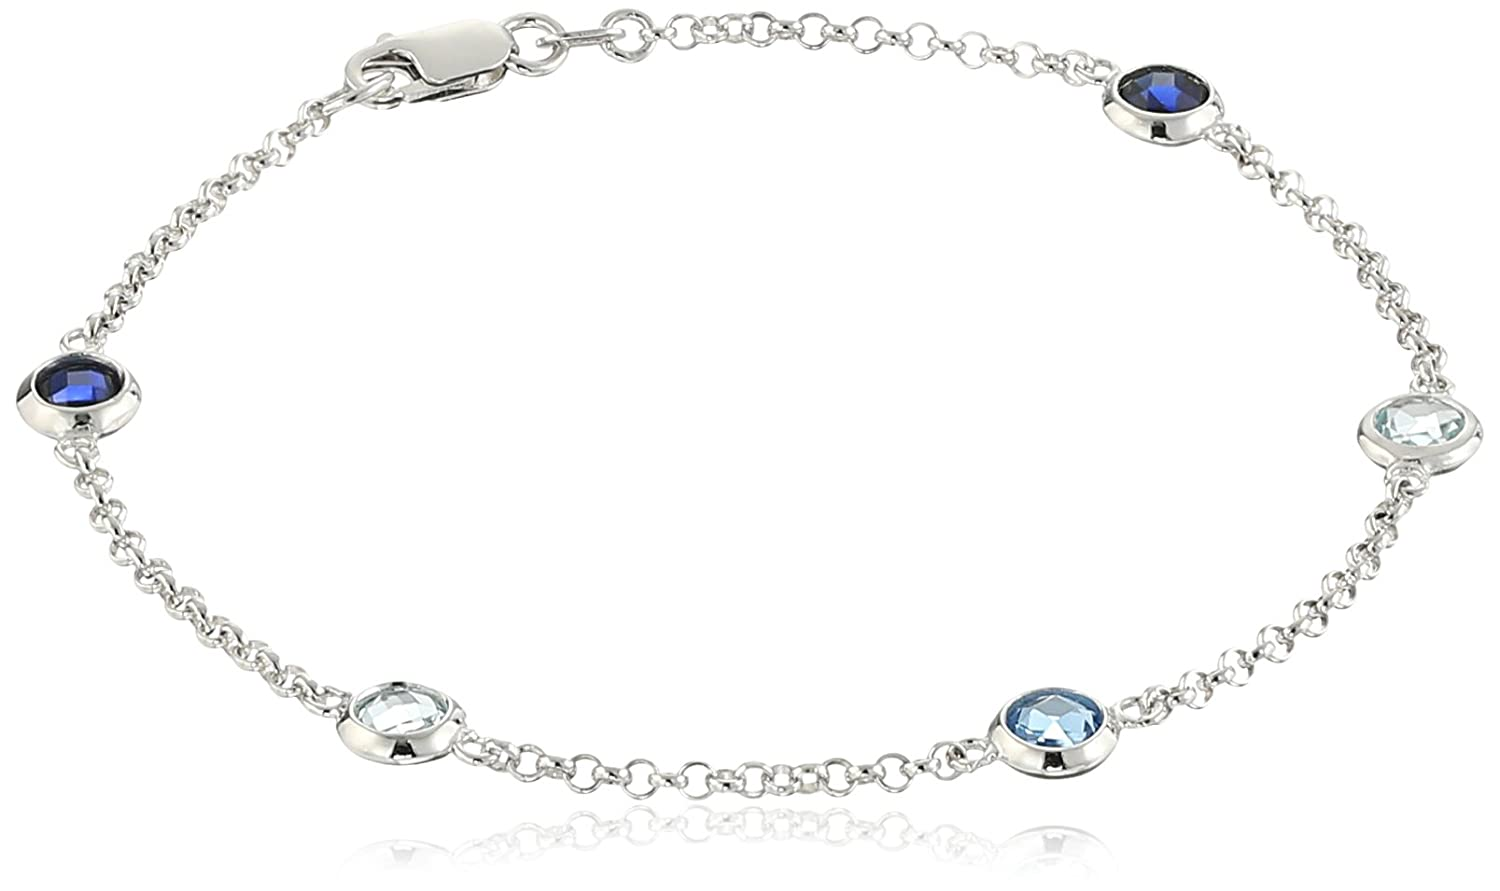 Rhodium Plated Sterling Silver Sky Blue Topaz, Lab-Created Aquamarine and Created Blue Sapphire Bezel Set Bracelet, 7.25""